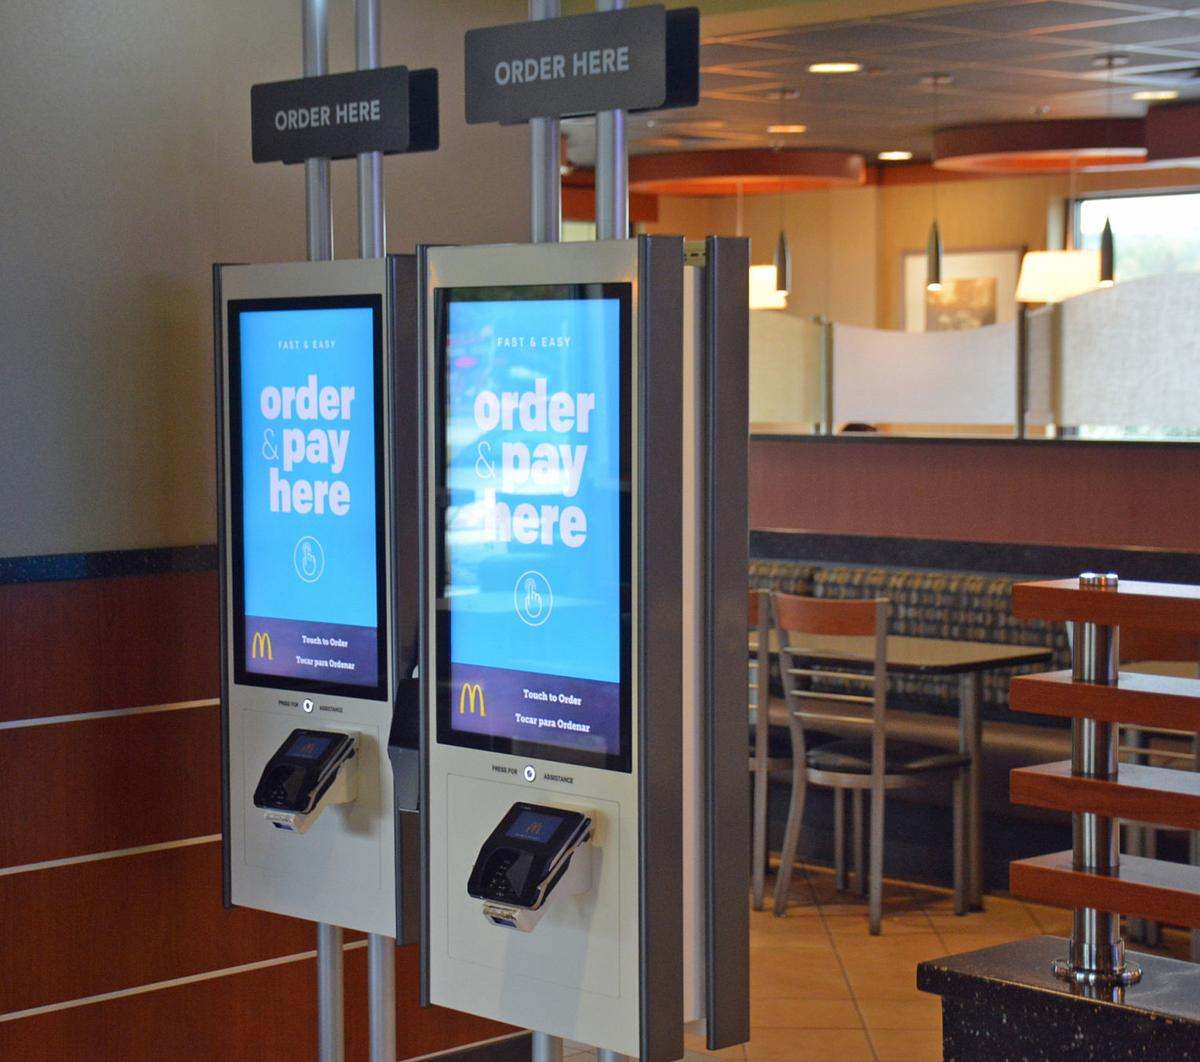 Automated kiosks